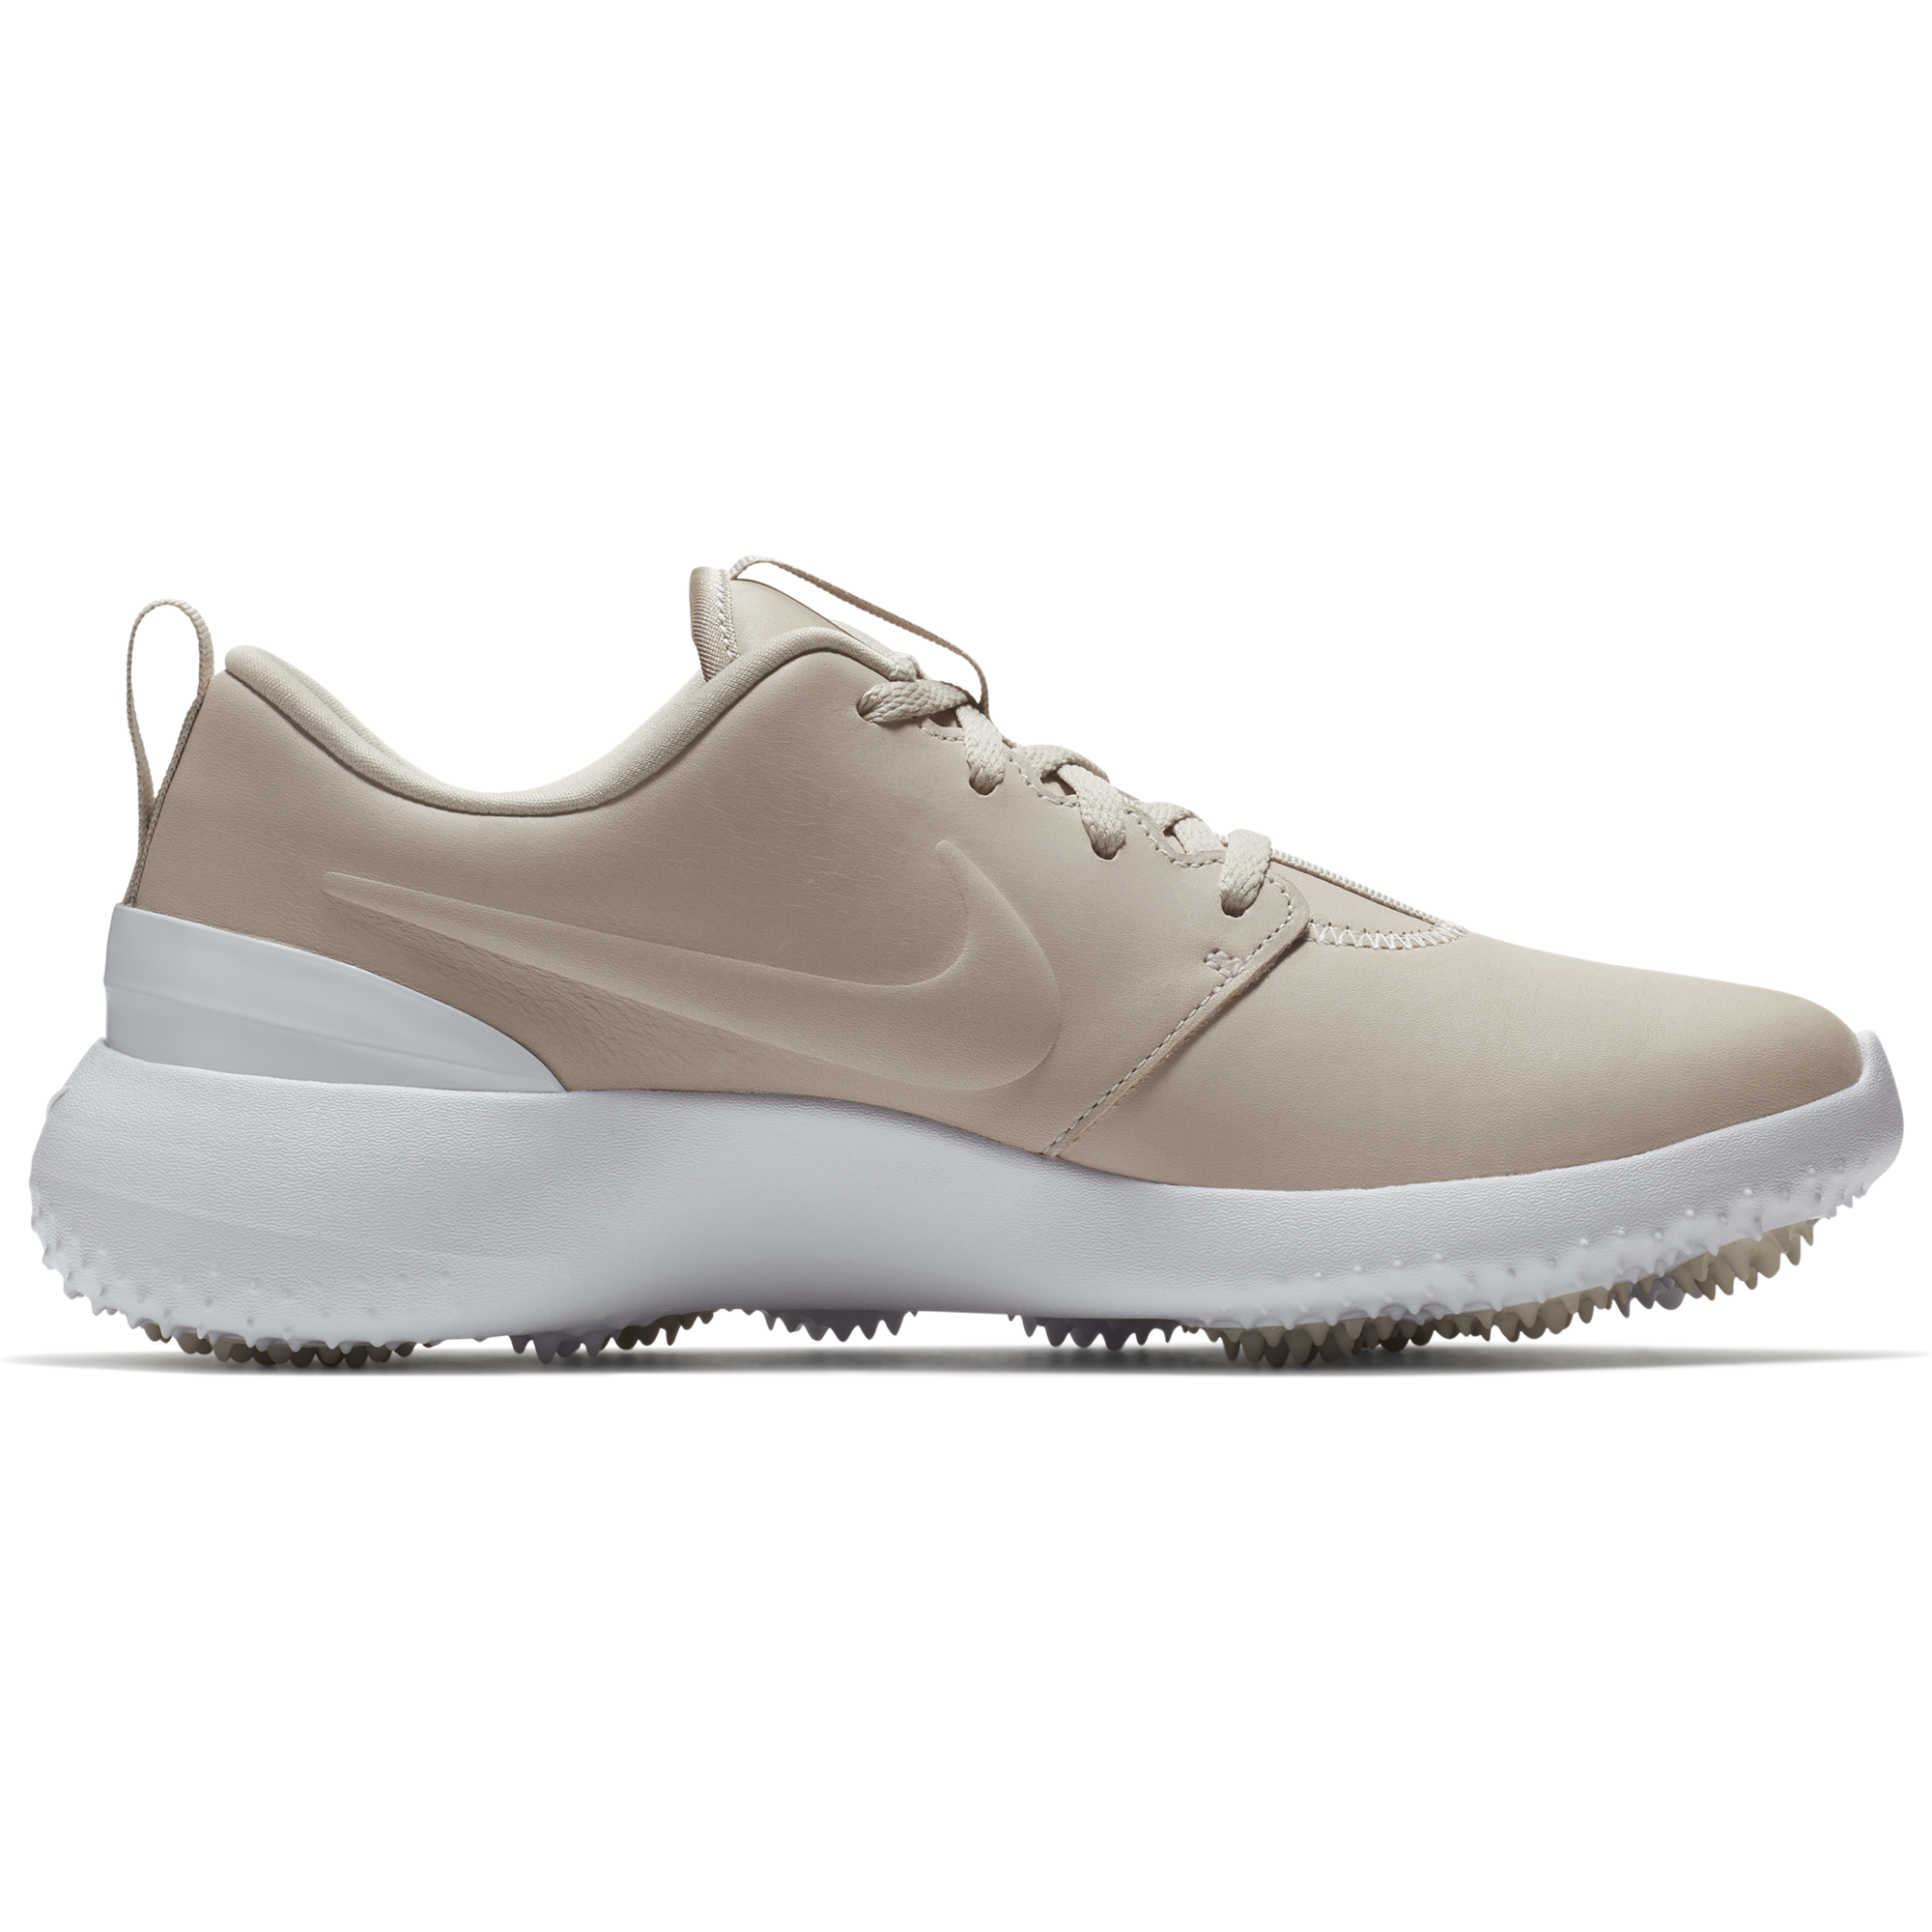 check out ad53a 51428 Nike Roshe G Premium Women's Golf Shoe - Tan